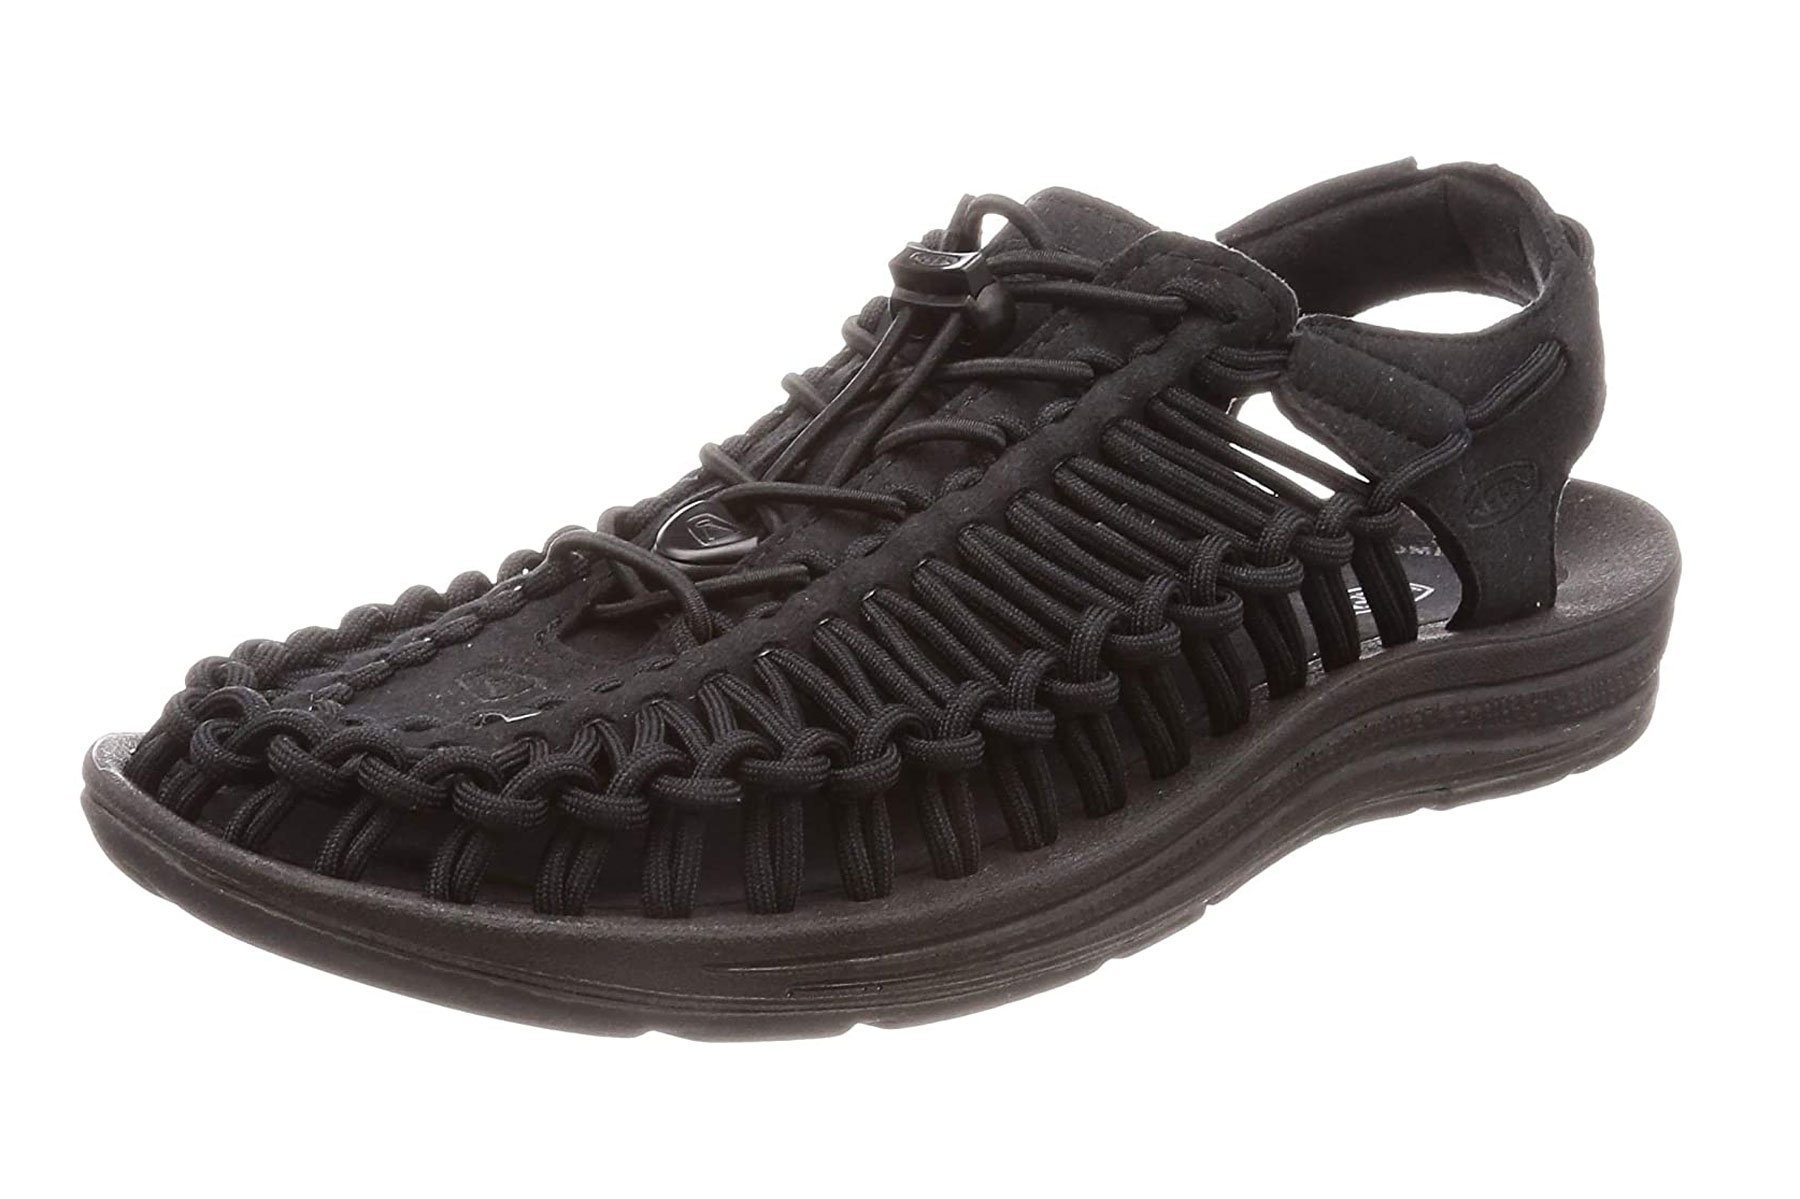 "Perfect for beach days or hiking, the UNEEK sandal goes for comfort, style, and function. One reviewer calls them the ""best of a sandal and shoe combined,"" thanks to their durability, anatomical footbed, woven-cord upper, and adjustable straps.To buy: amazon.com, from $45"